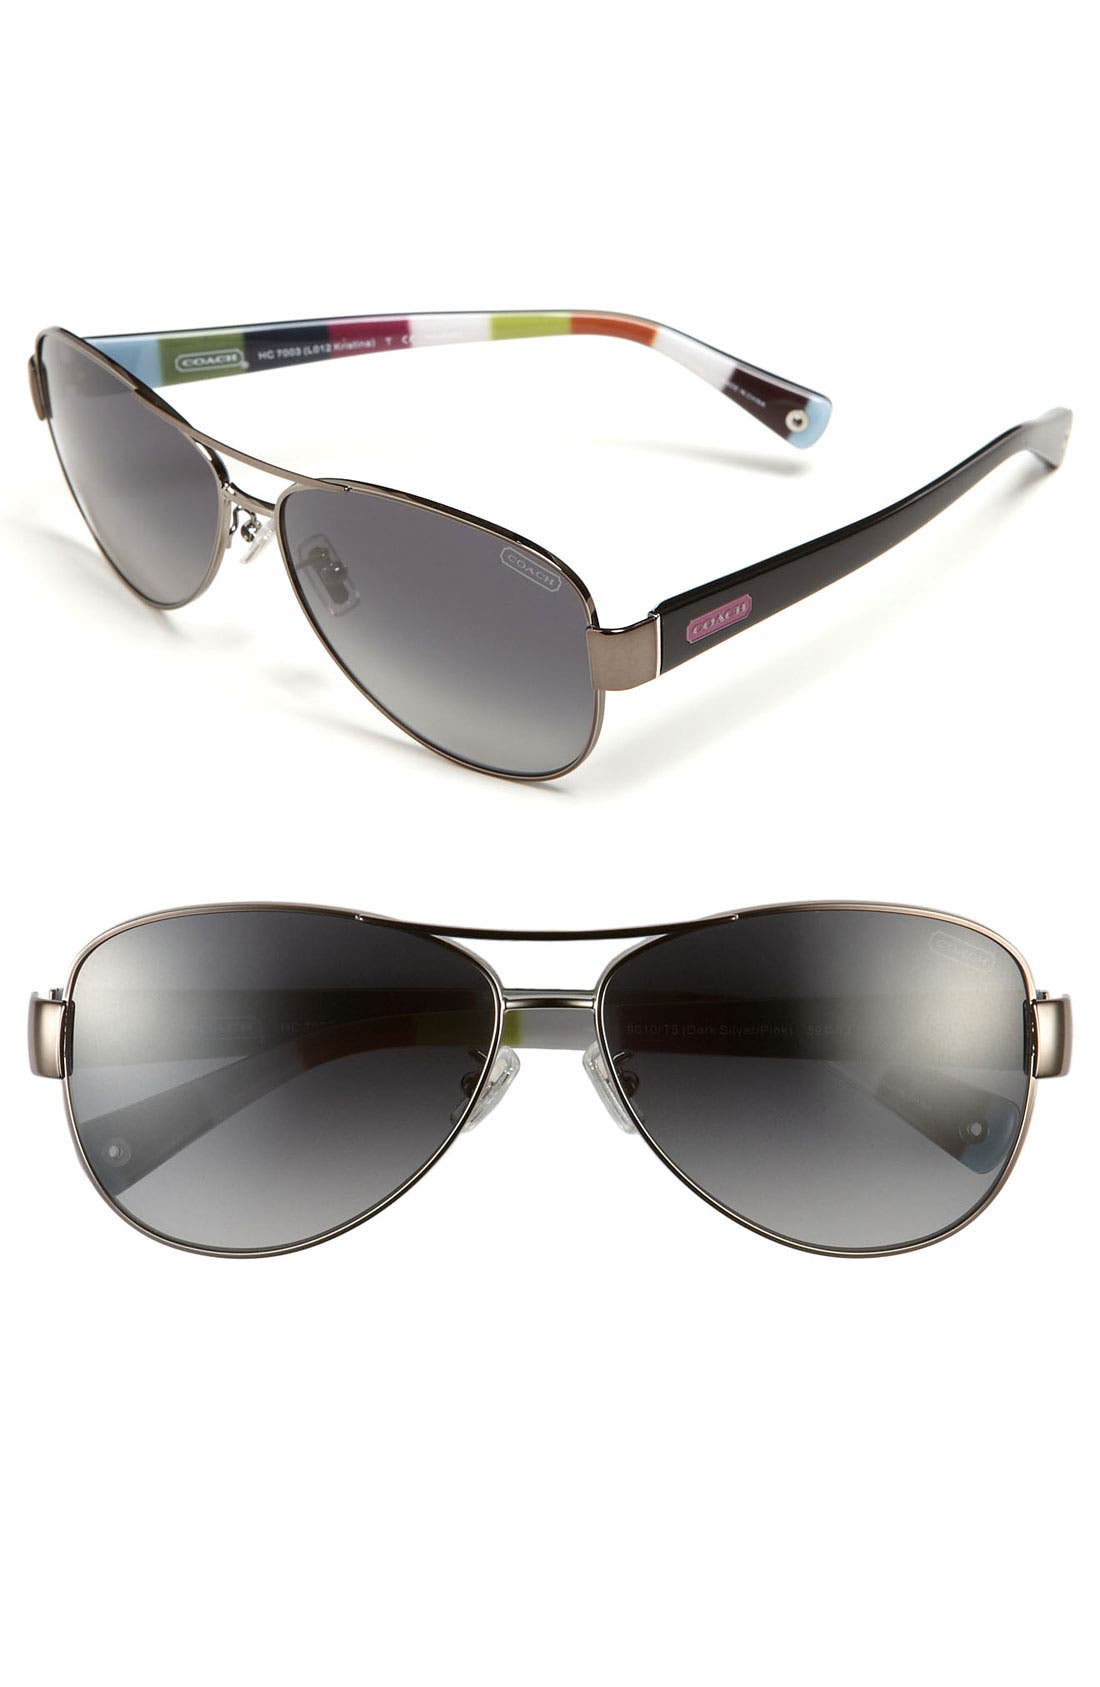 Alternate Image 1 Selected - COACH Polarized Metal Sunglasses